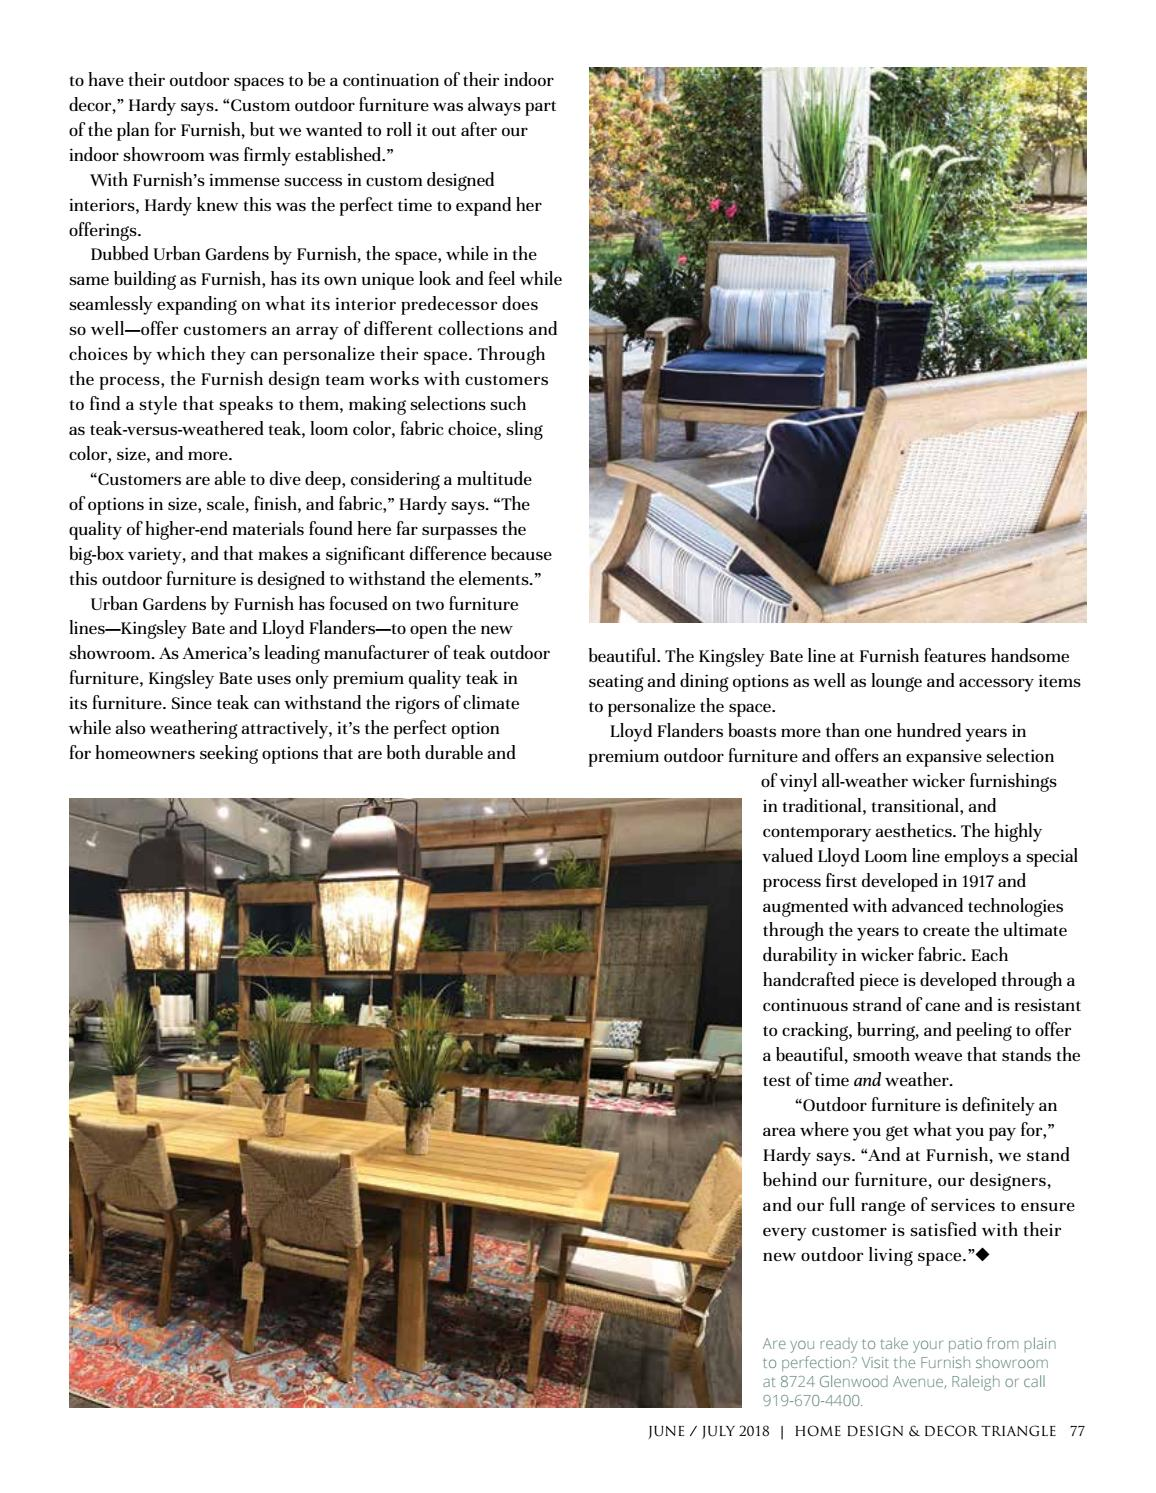 The Furnish Triangle June July 2018 By Home Design Decor Magazine Issuu